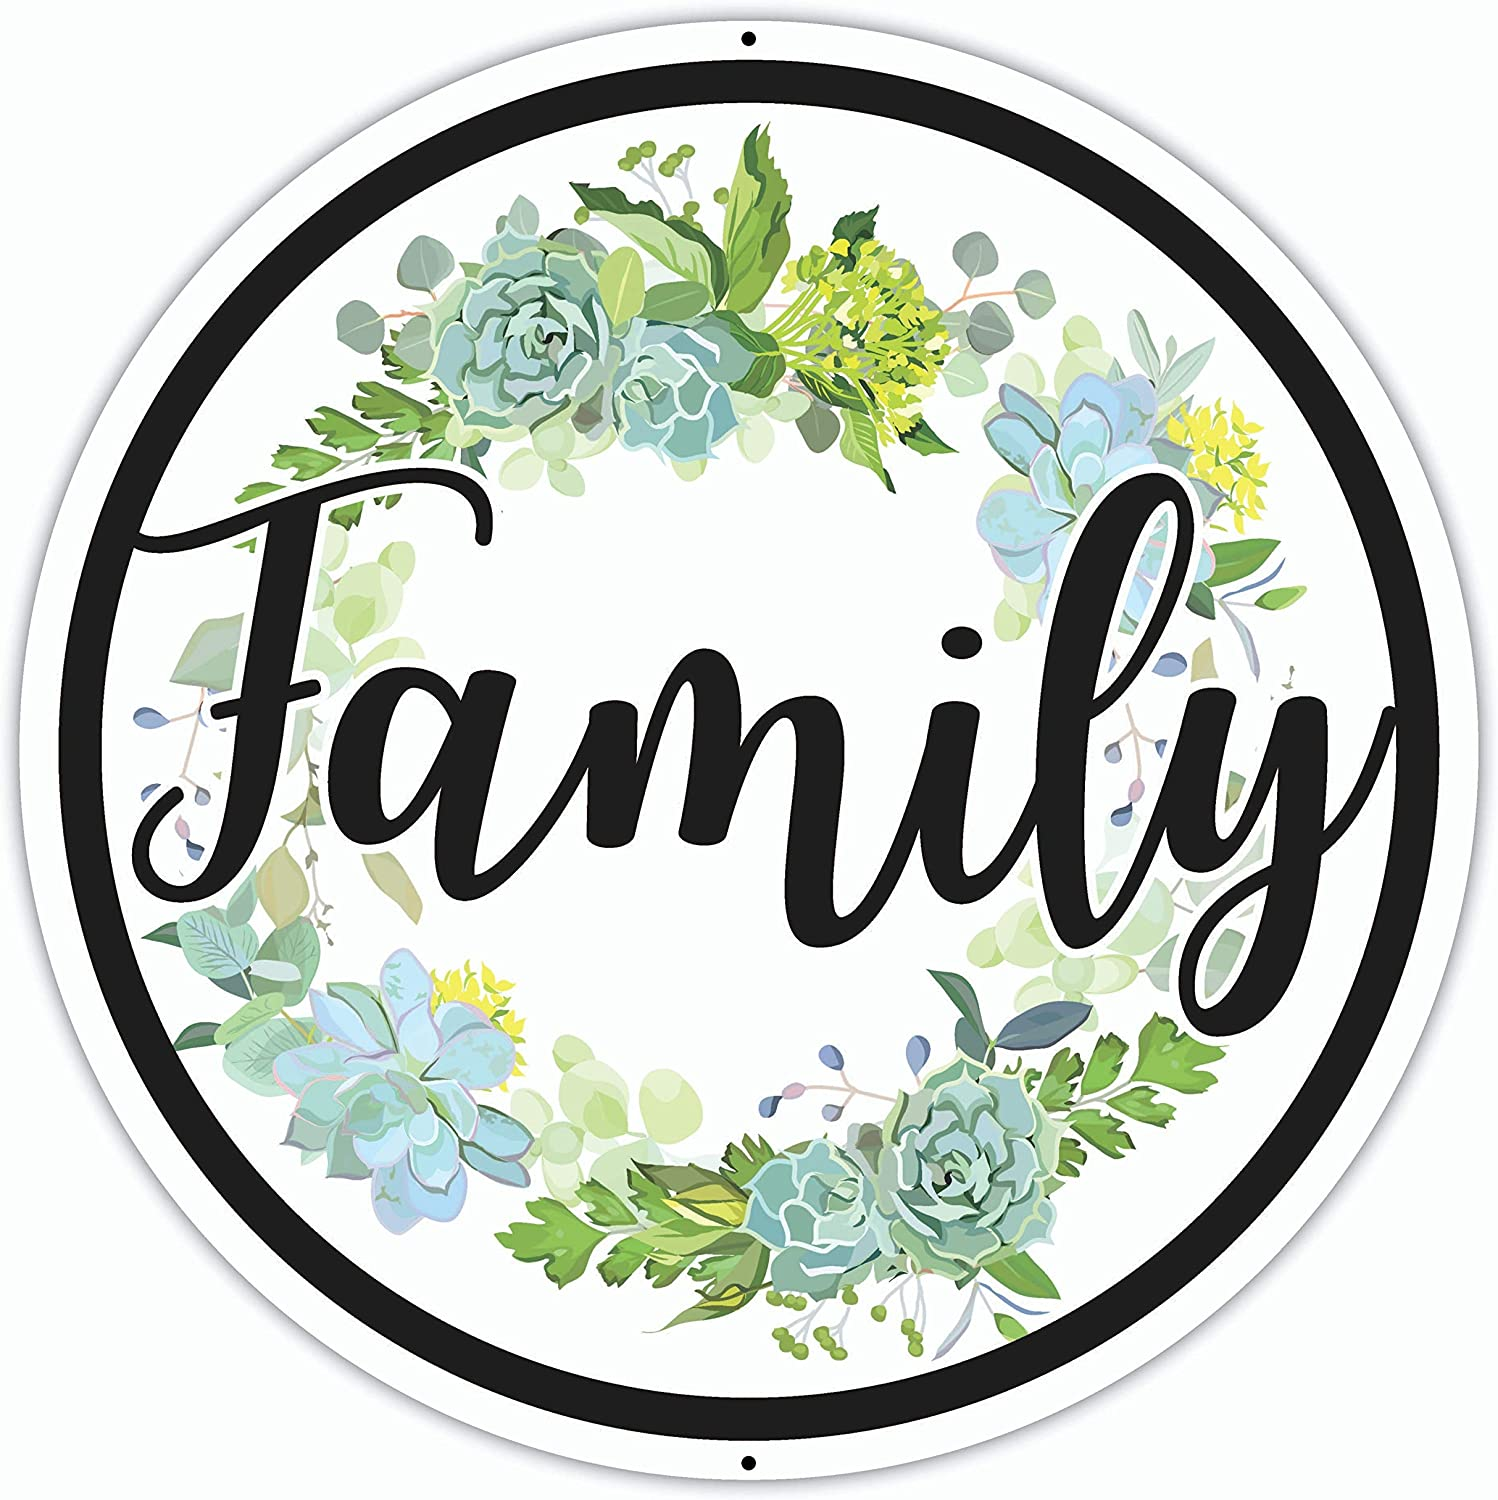 Metal Family Sign - 12 x 12 Inches - Aluminum - Large Round Family Wall Signs - Decorative Family Signs for Home Decor Wall - Big Iron Family Word Signa Plaque Art for Living Room Rustic Farmhouse